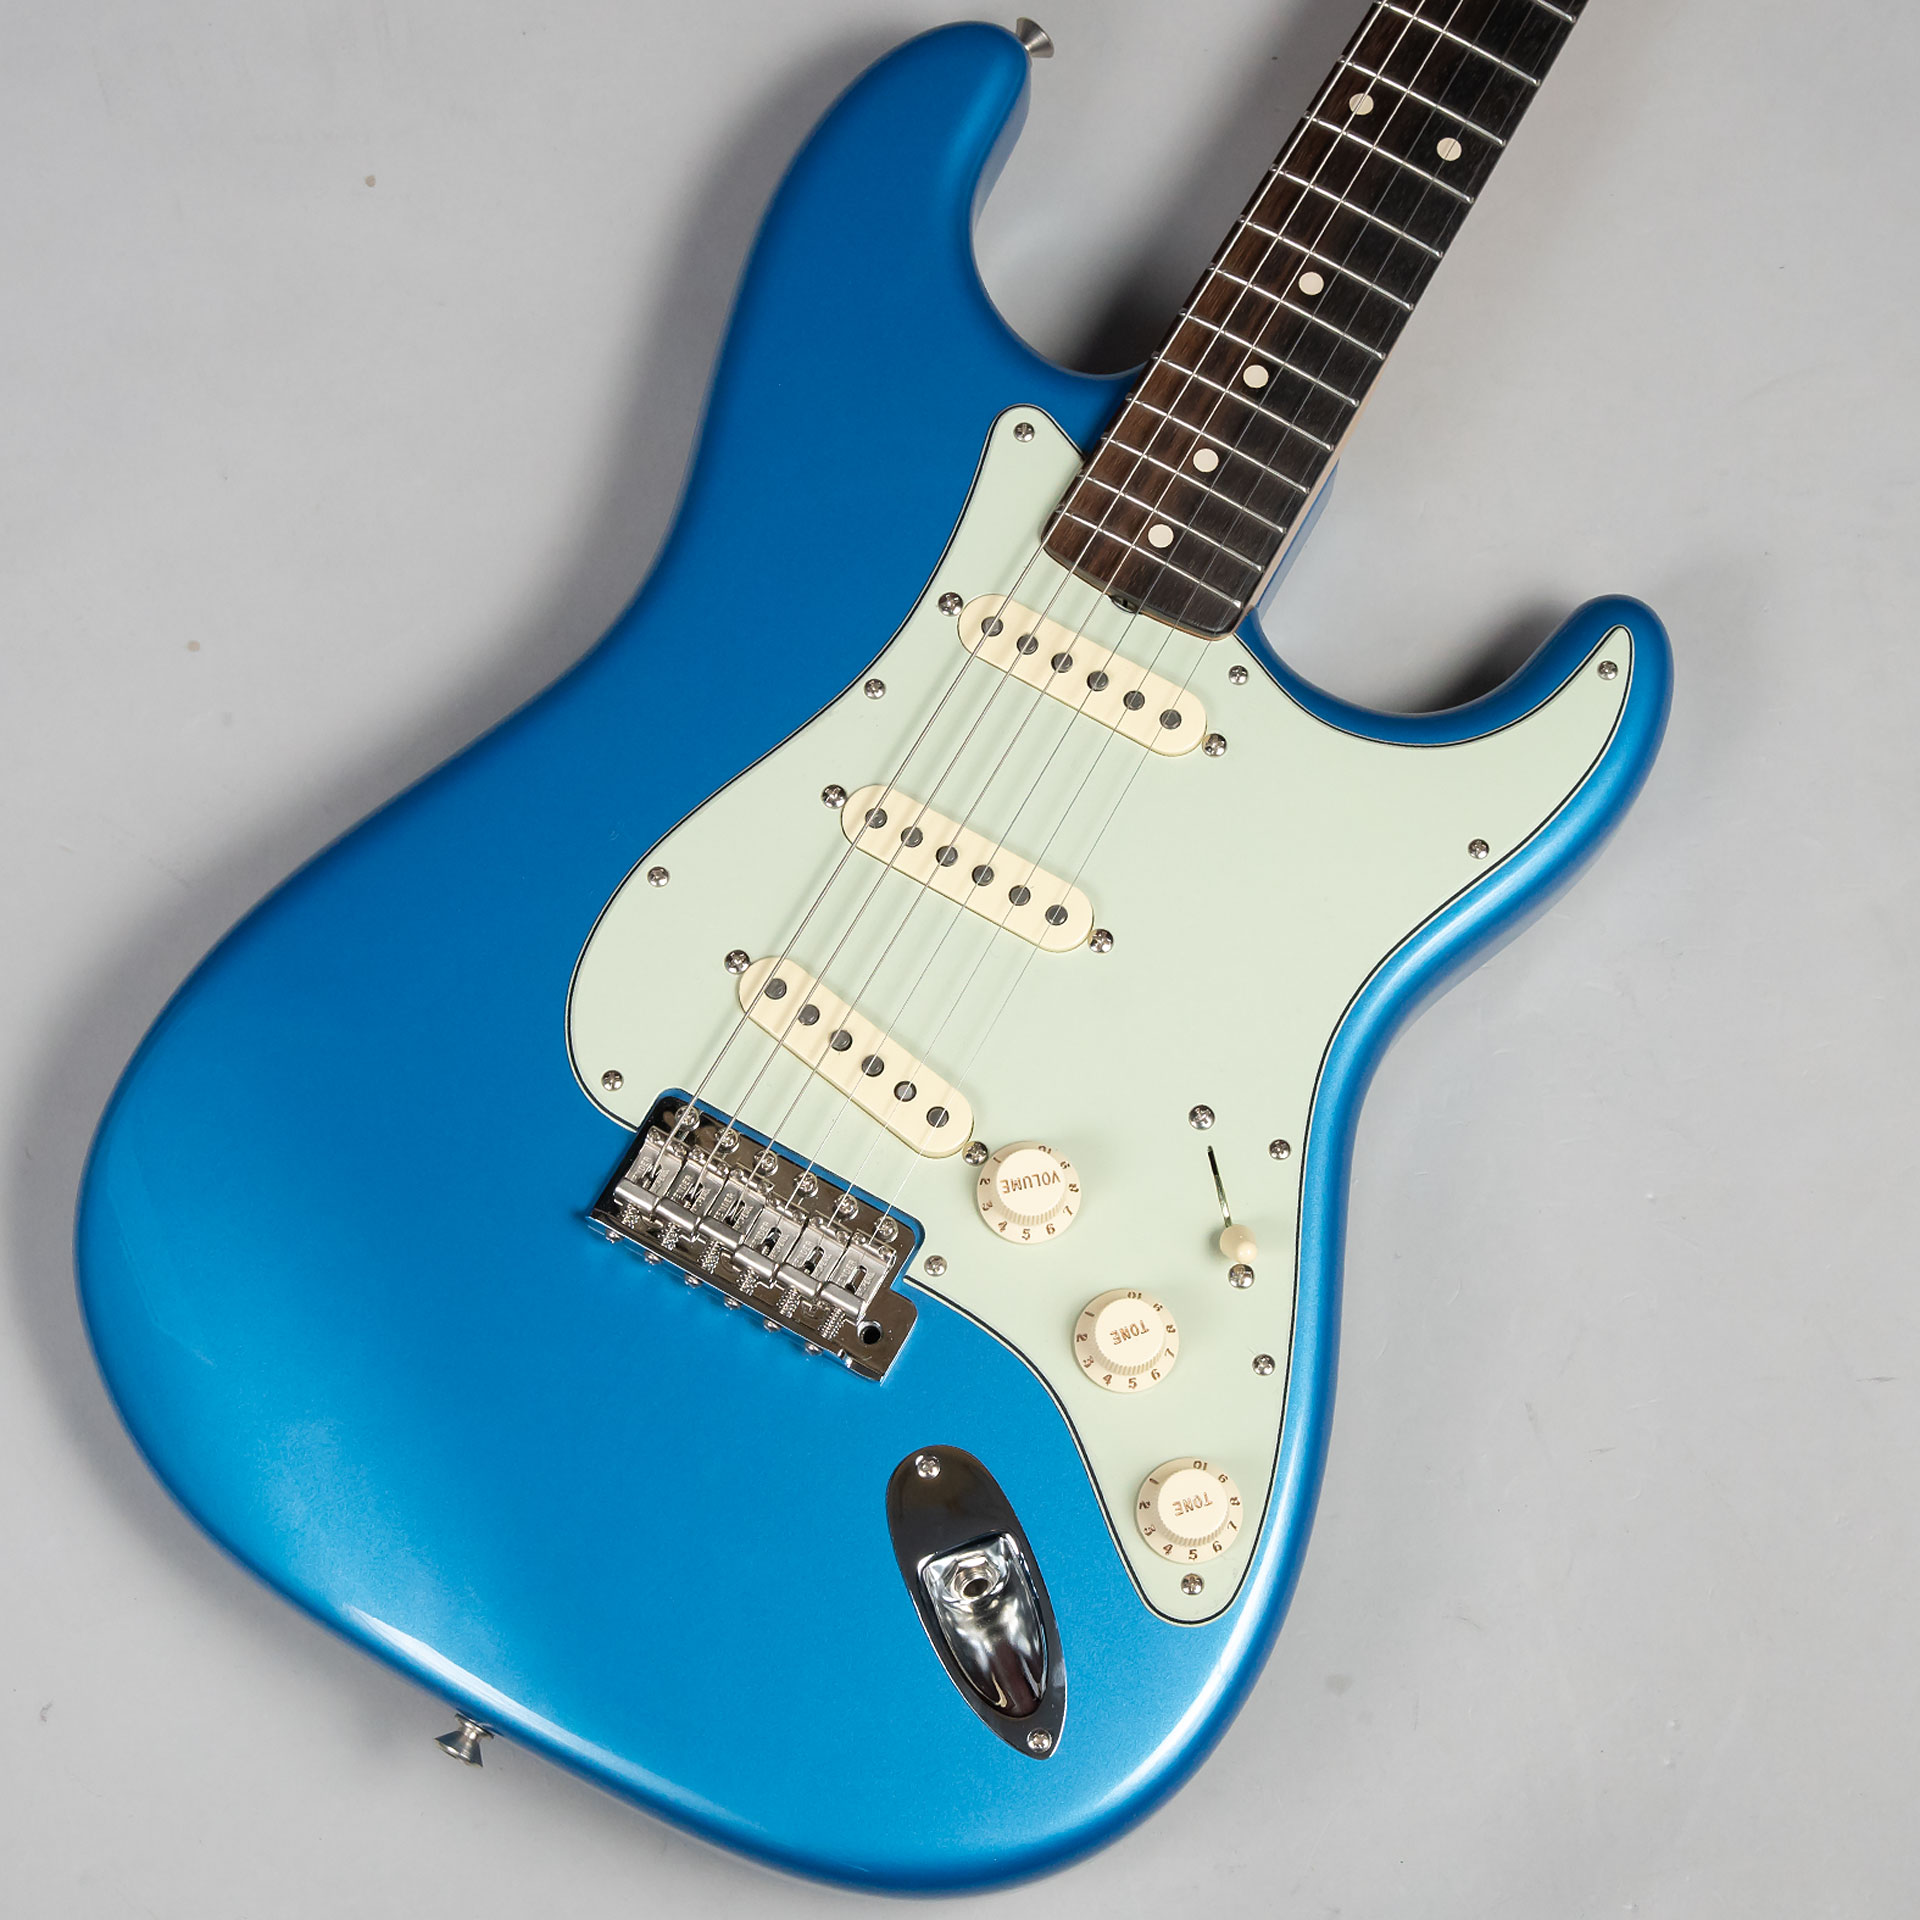 1960 Stratocaster NOS Lake Placid Blueのボディトップ-アップ画像